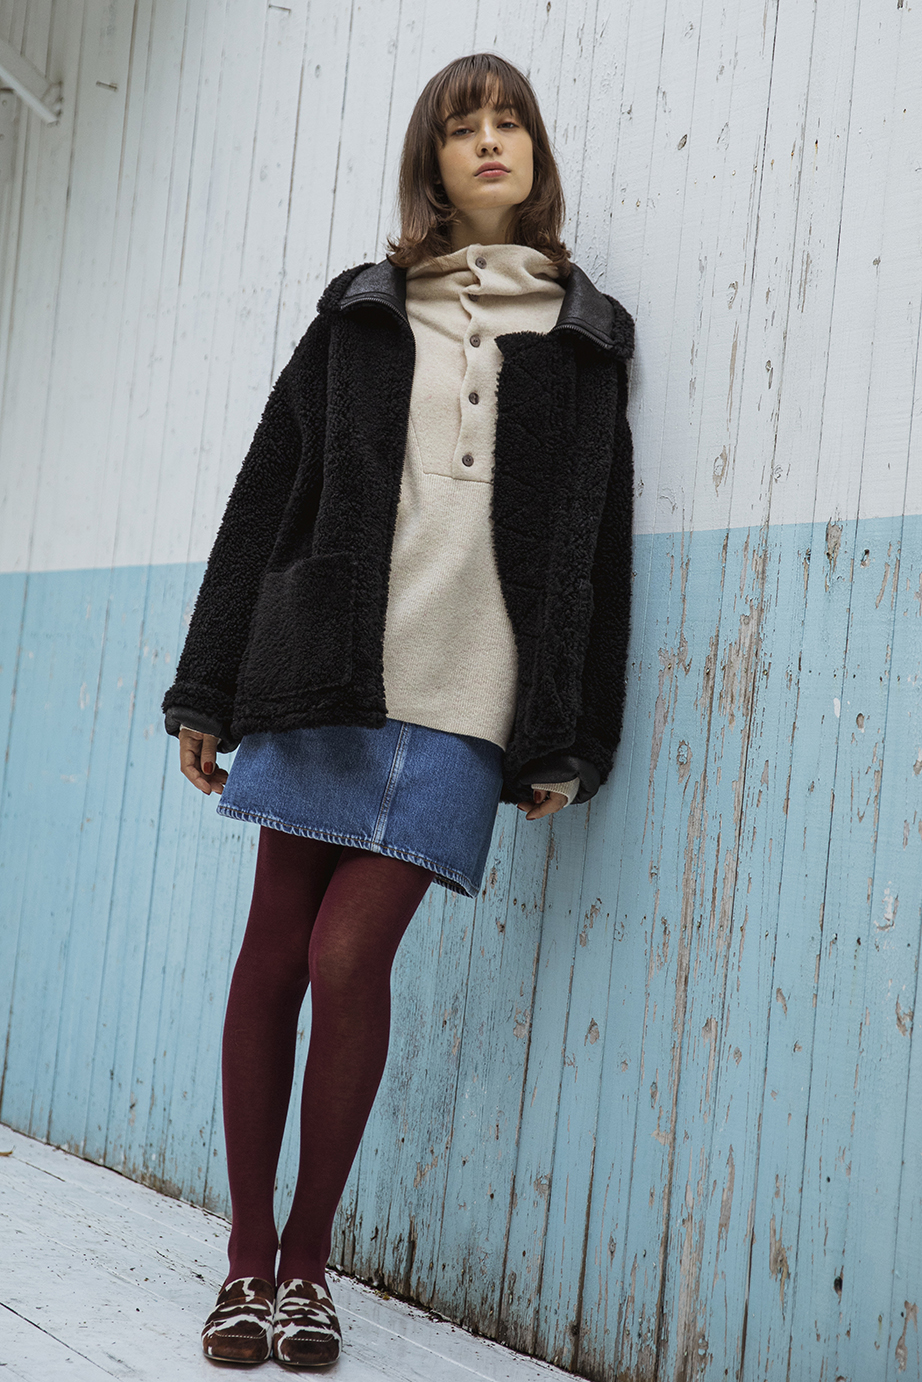 35_1